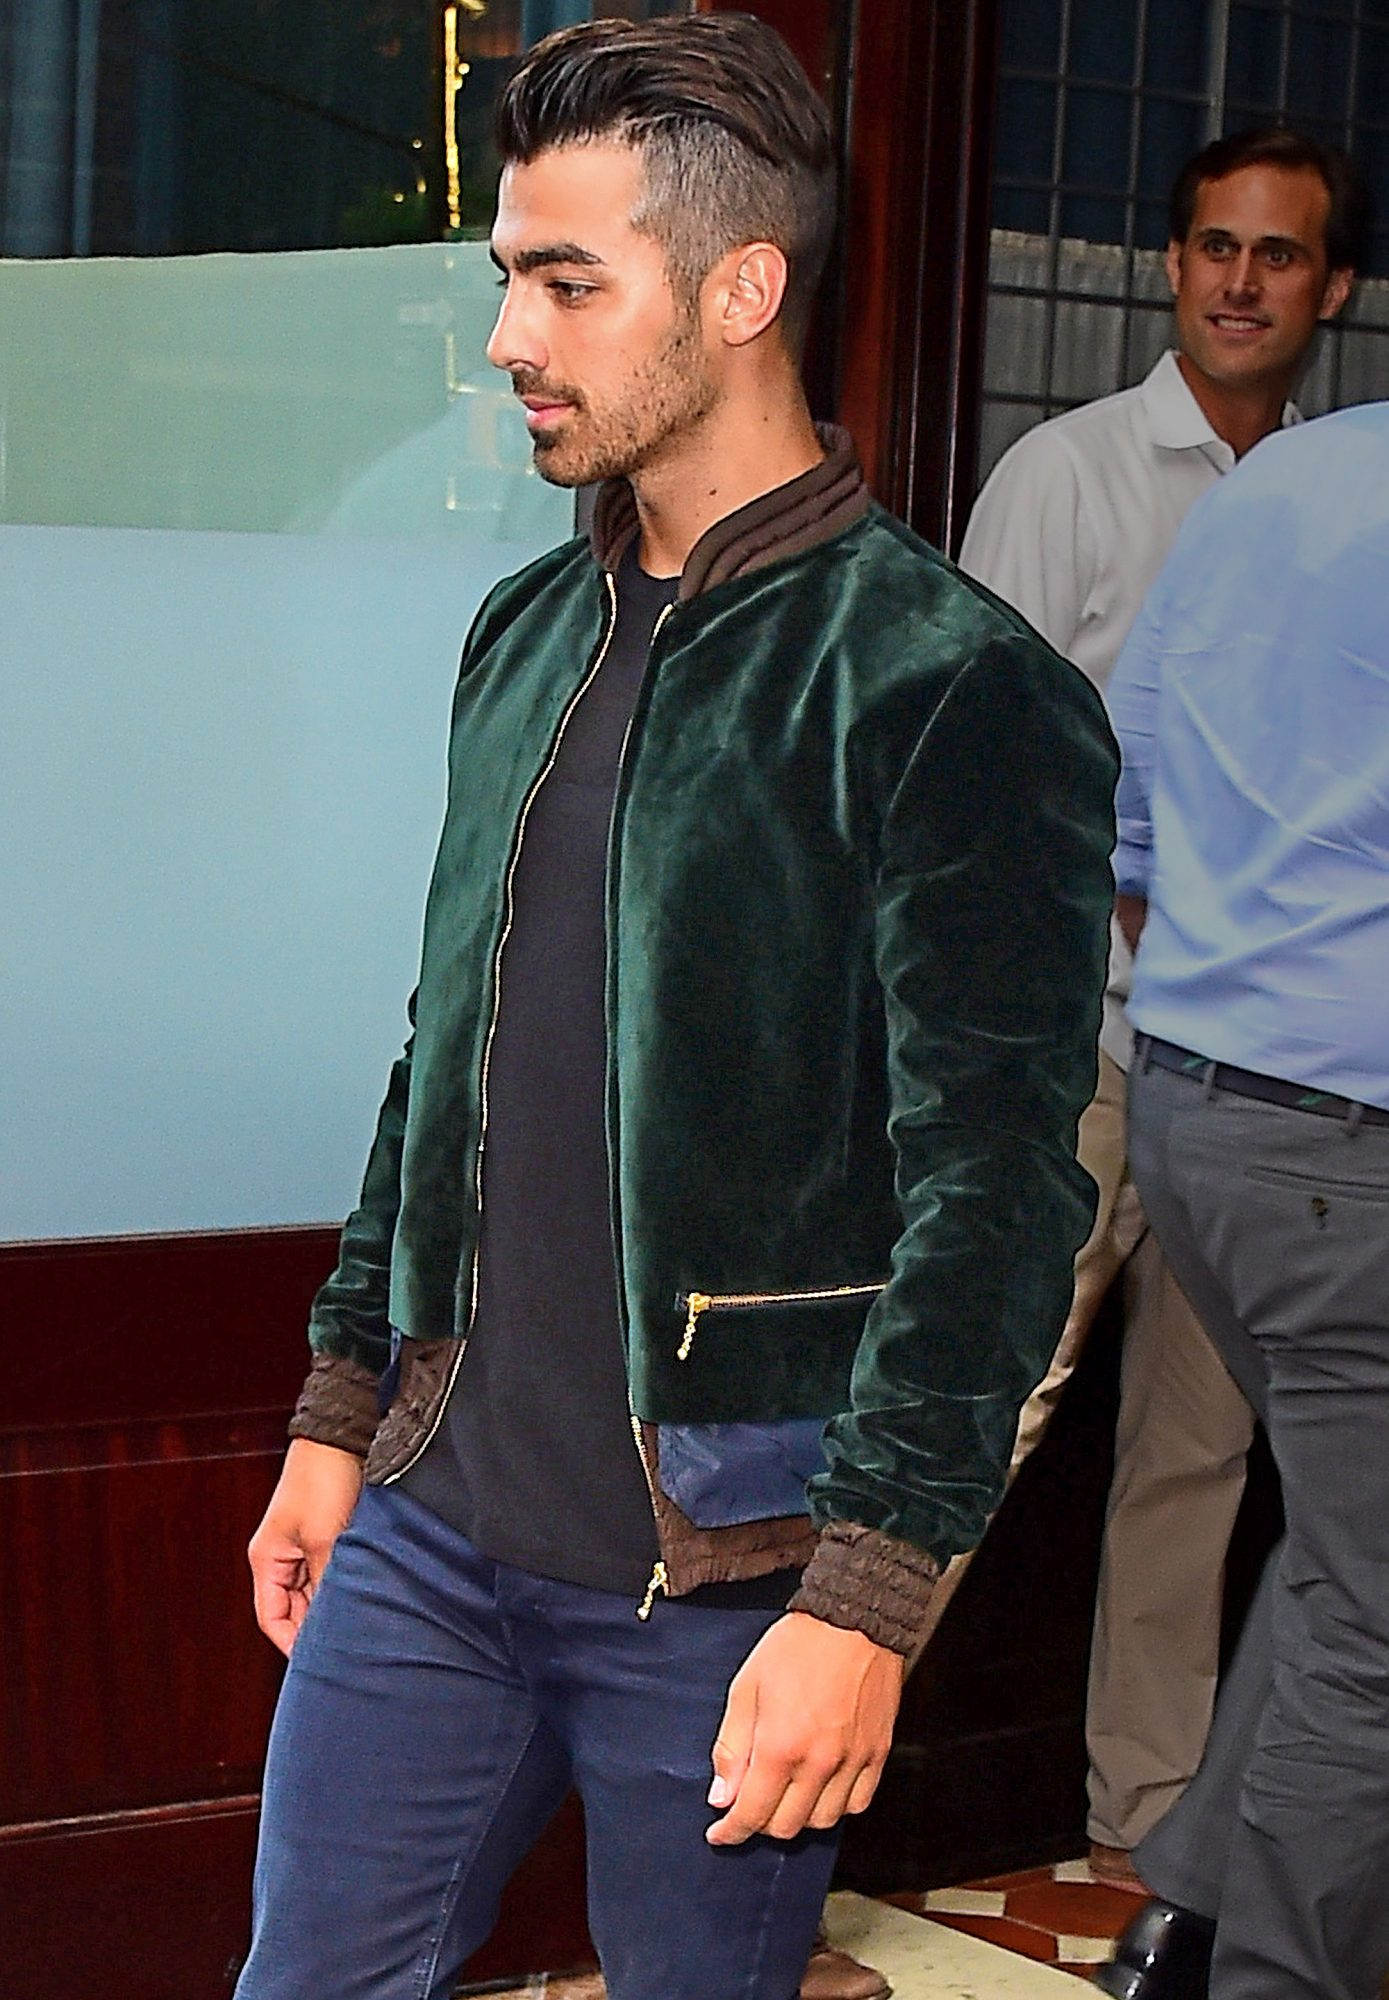 Joe Jonas rocks a green velvet jacket in NYC